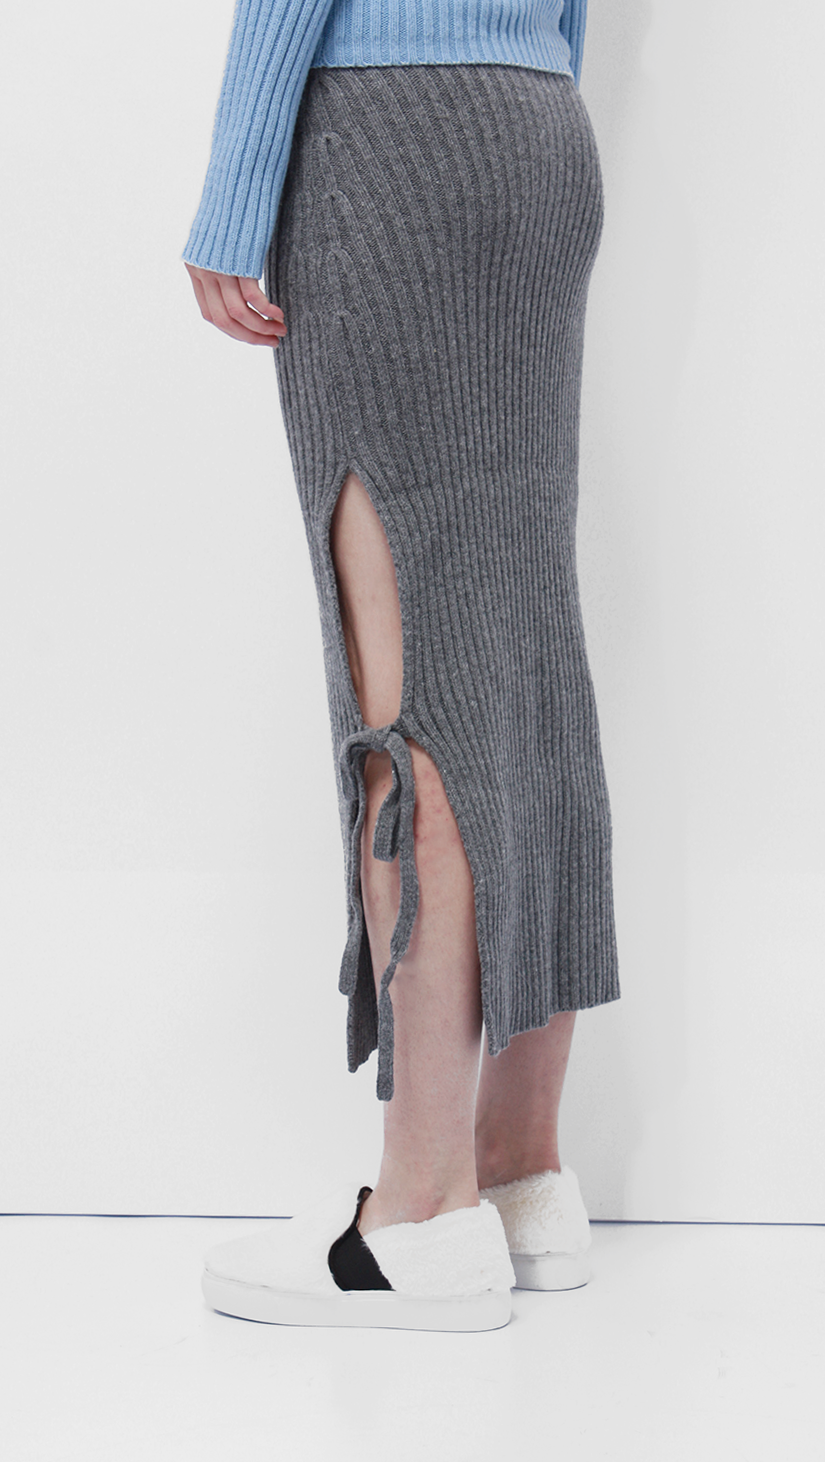 How to tie a skirt with knitting needles